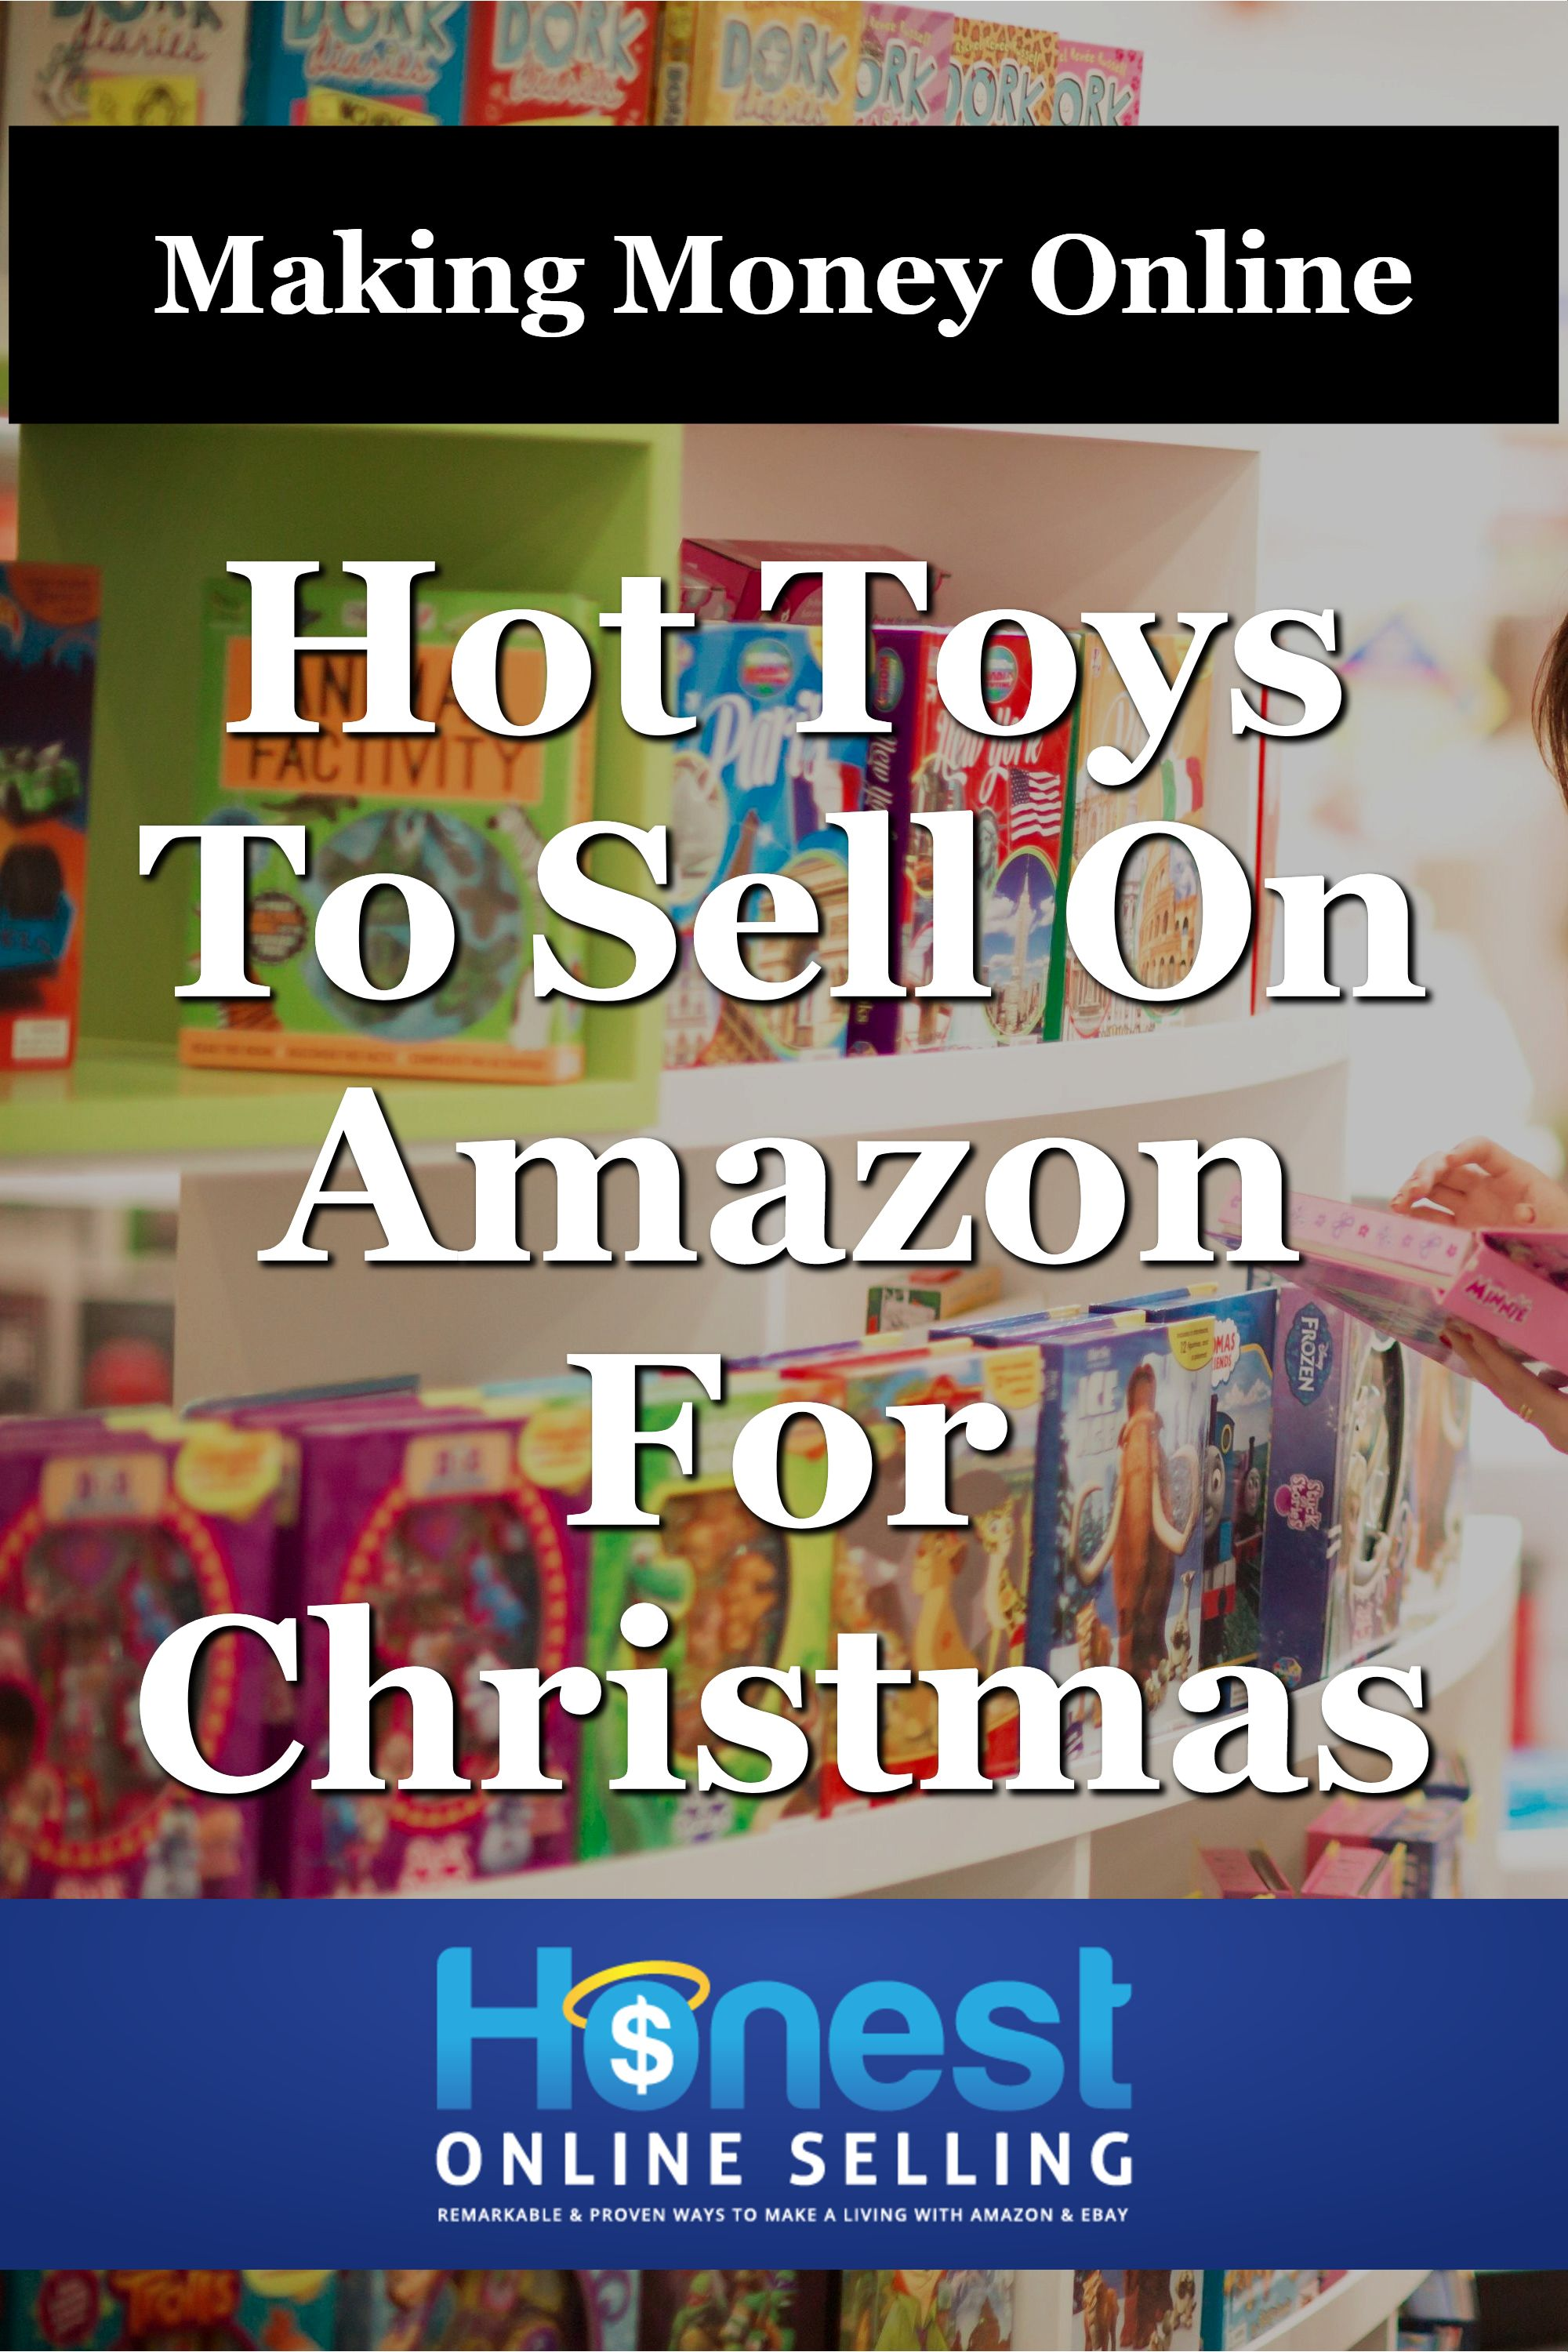 What Toys To Sell And How To Source It Amazon Ebay 2019 Jordan Malik Amazon Selling Expert Bestselling Author Make Money On Amazon Best Business To Start Things To Sell